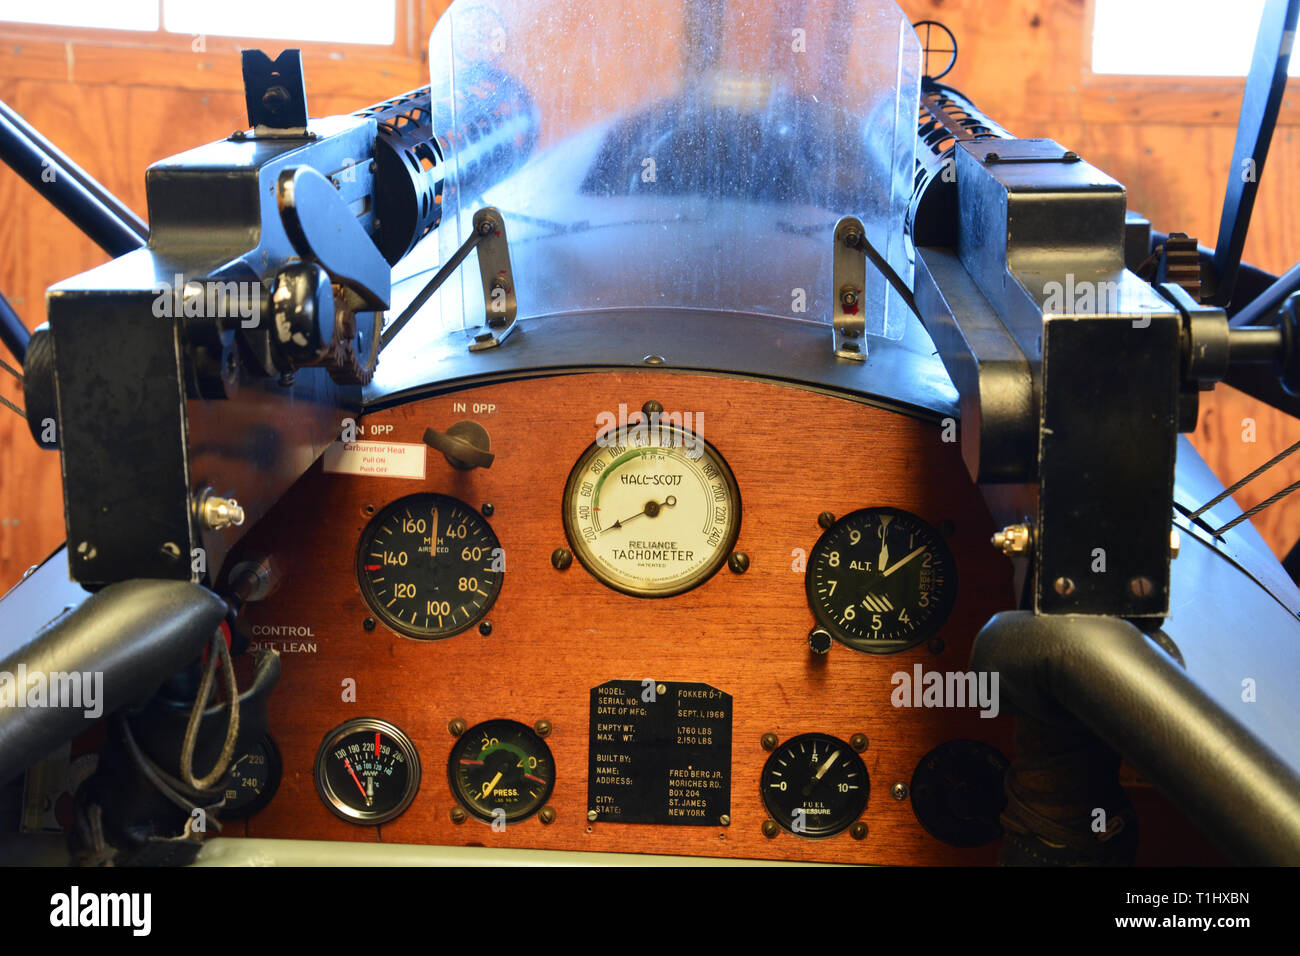 The cockpit instrument panel of a German WWI Biplane in a hanger at the Military Aviation Museum in Virginia Beach. Stock Photo